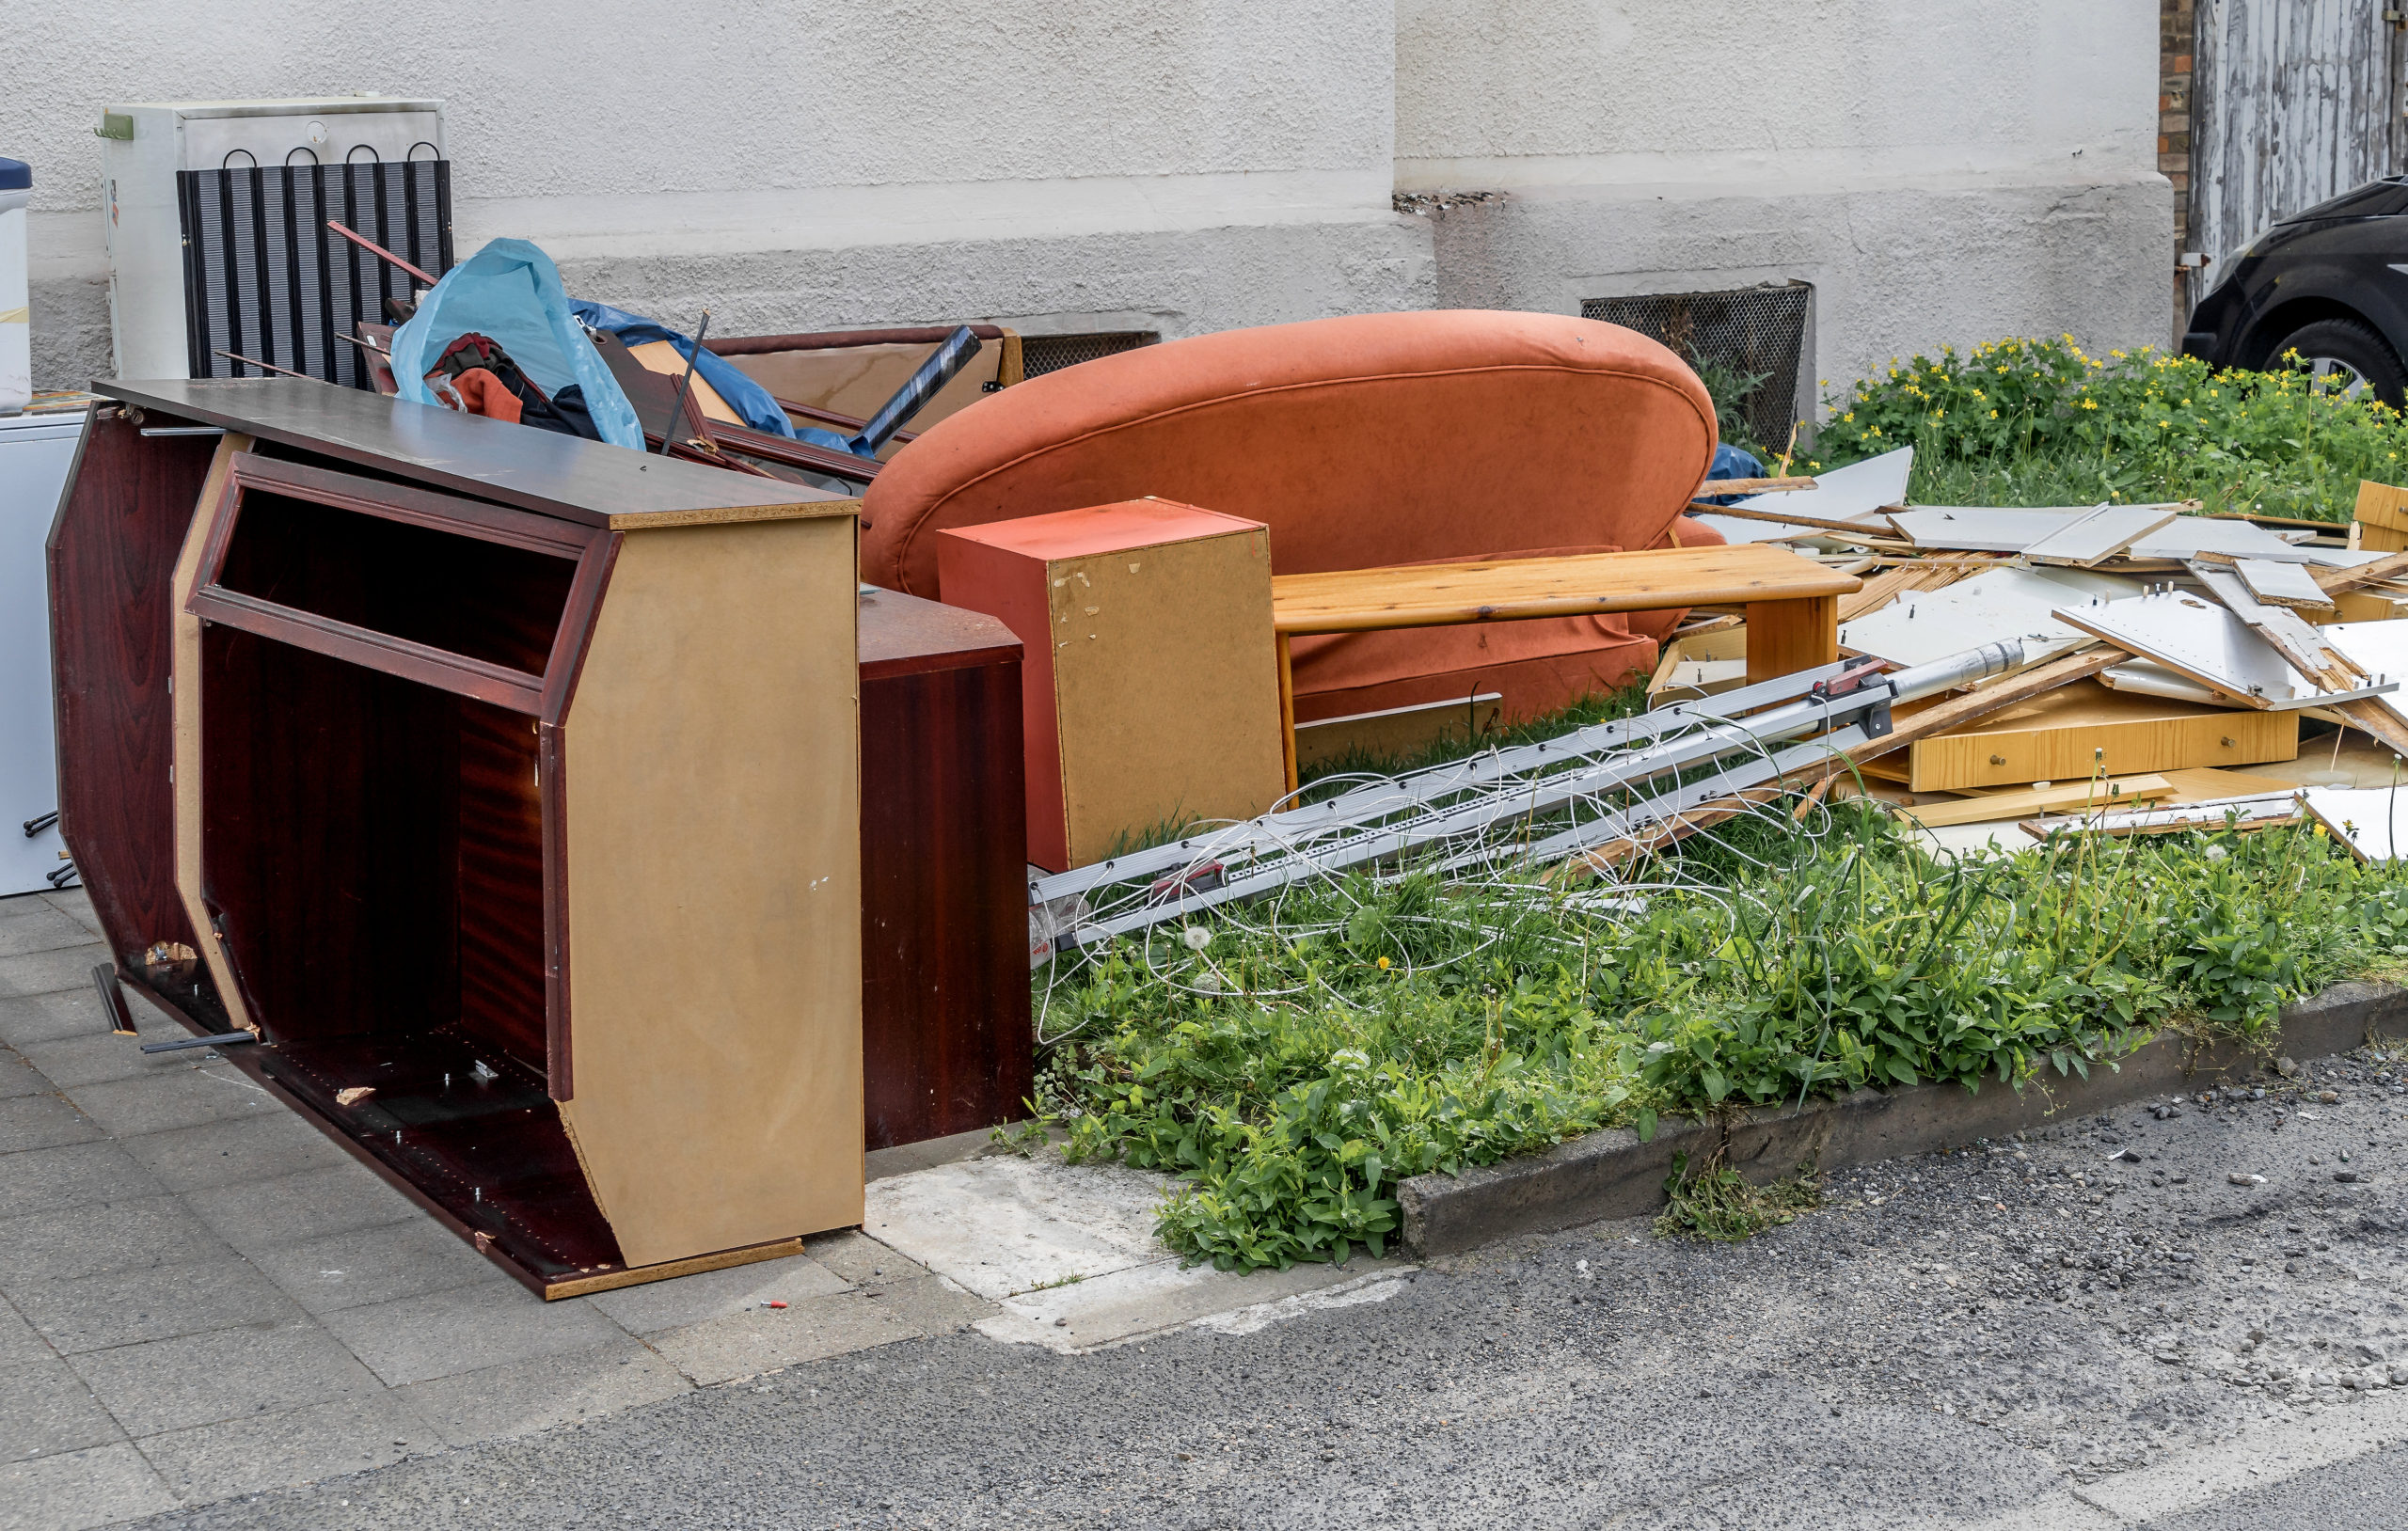 Bulky waste with cupboards, a sofa and furniture on the lawn in front of an apartment building, germany